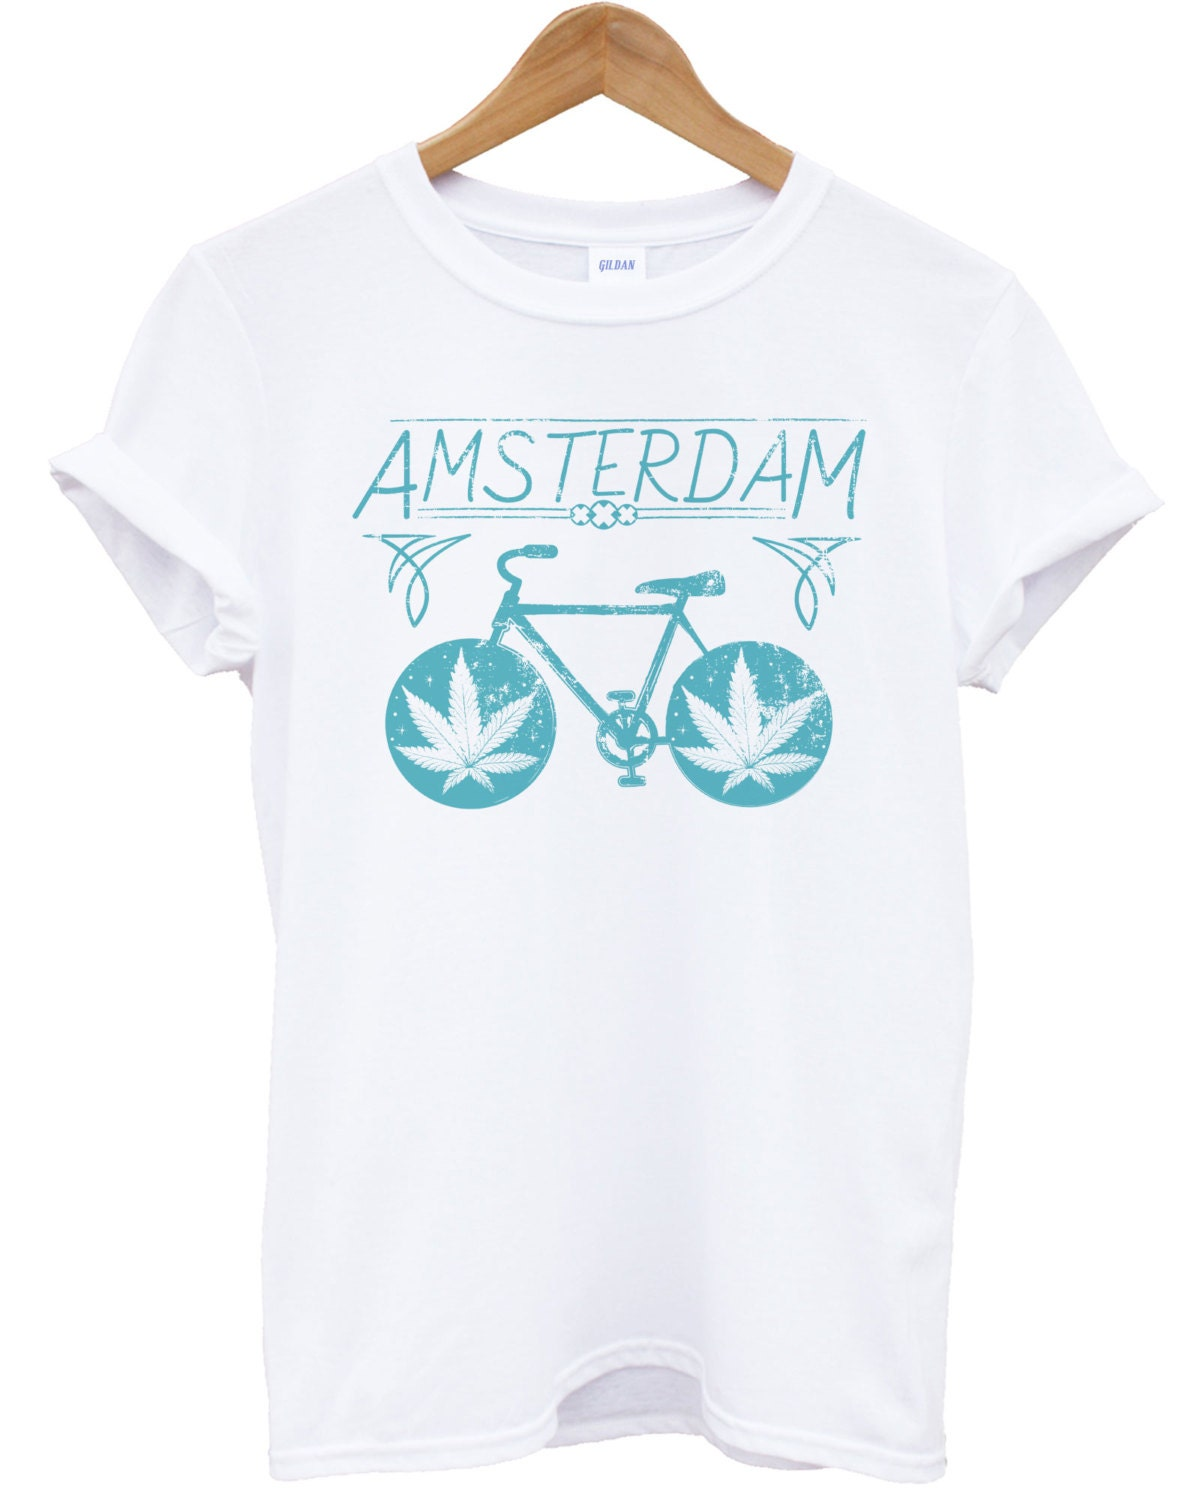 Amsterdam Weed Dope T-shirt Hipster Dope Weed Swag Puff Cannabis Ganja de Fun Party rétro dessus de vélo fc0382